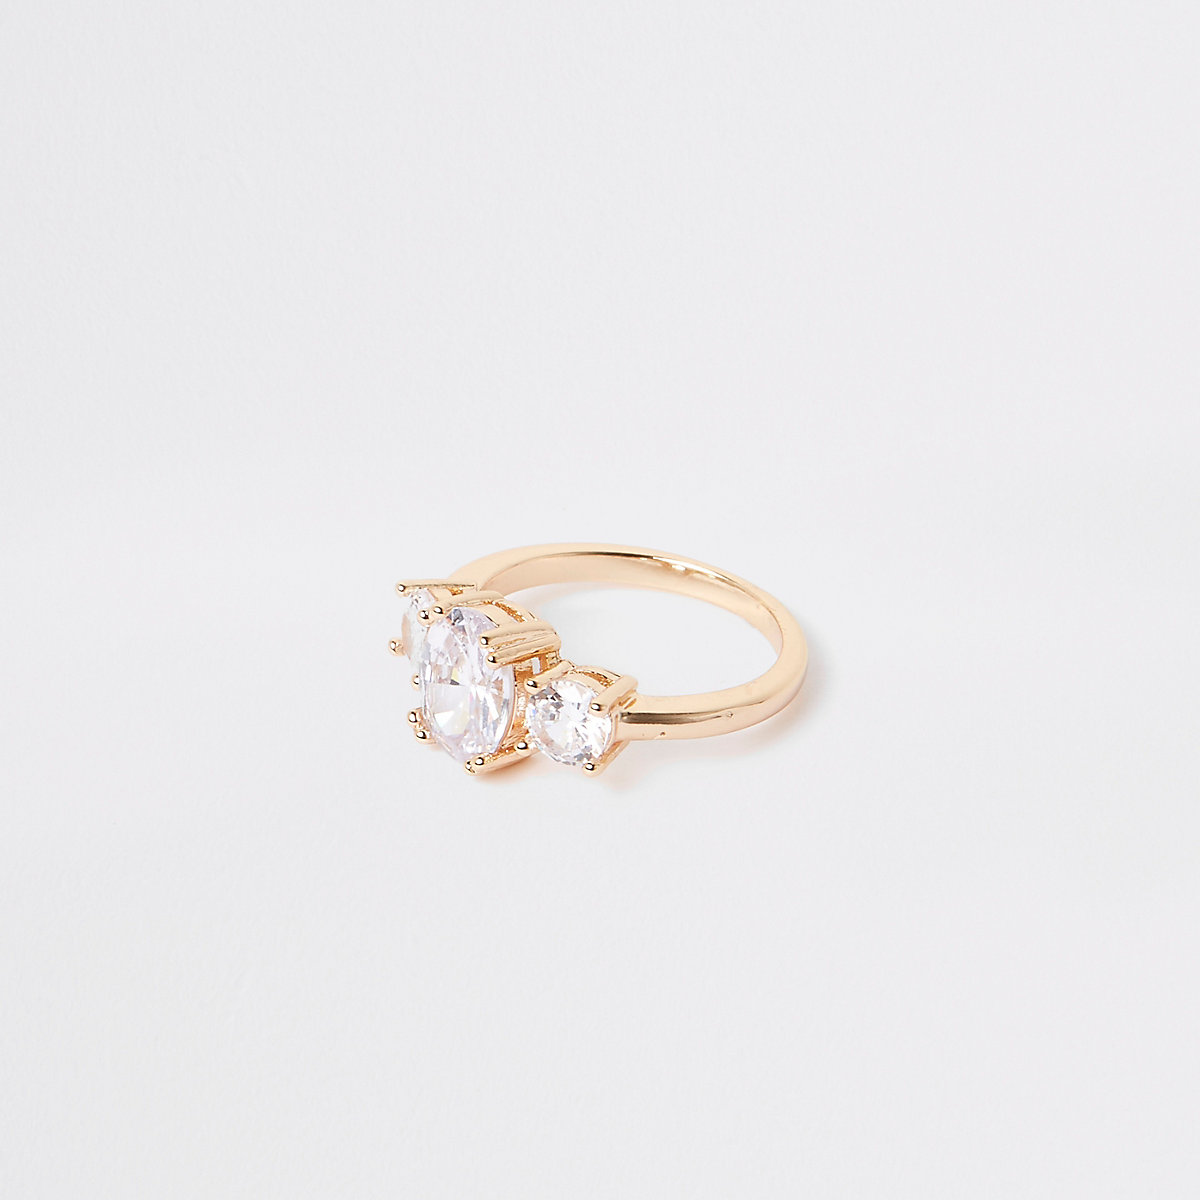 Gold tone cubic zirconia ring